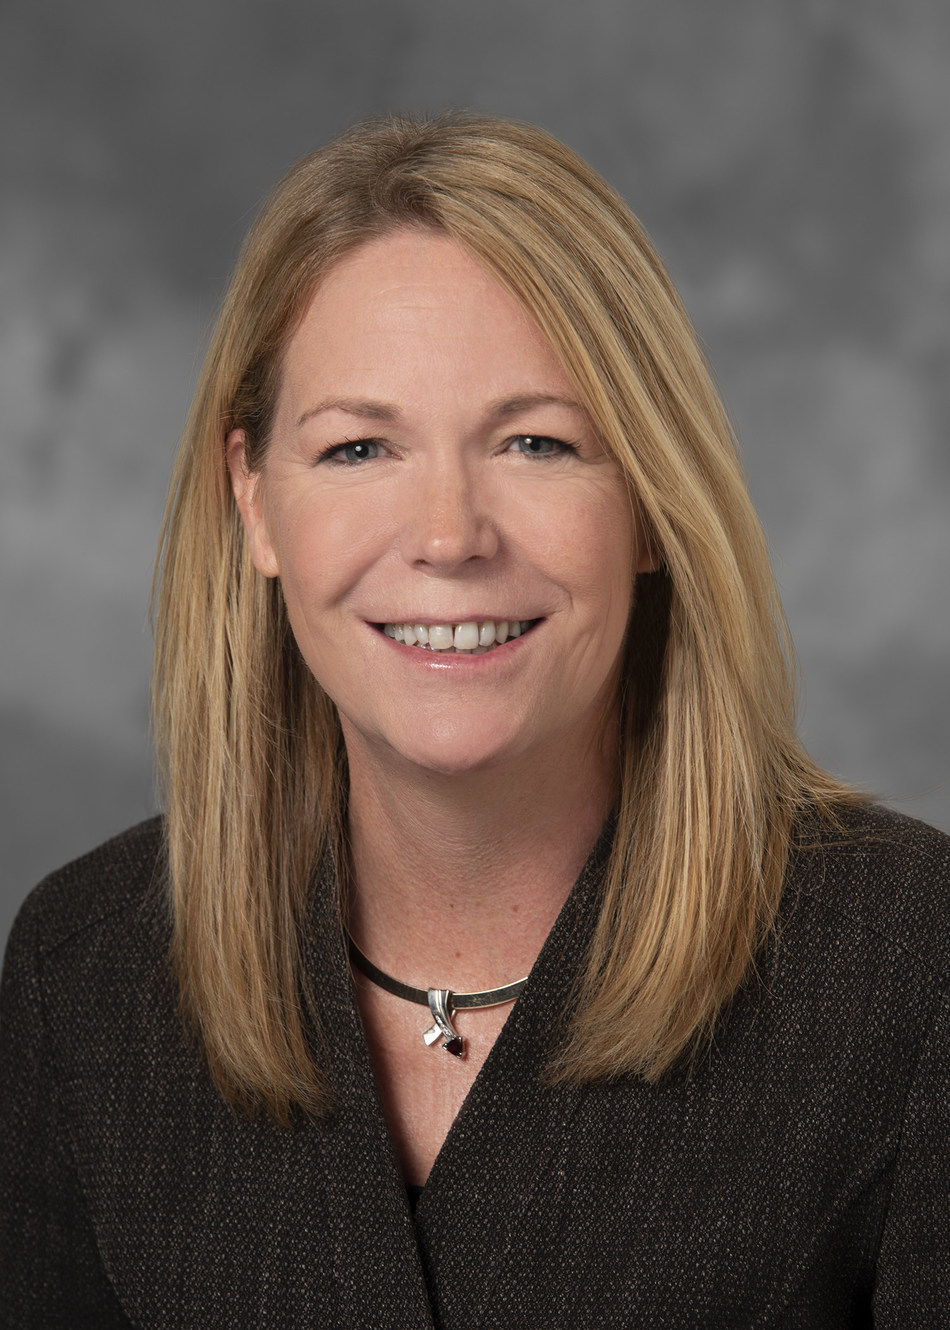 Henry Ford Health System Names Two New Senior Leaders